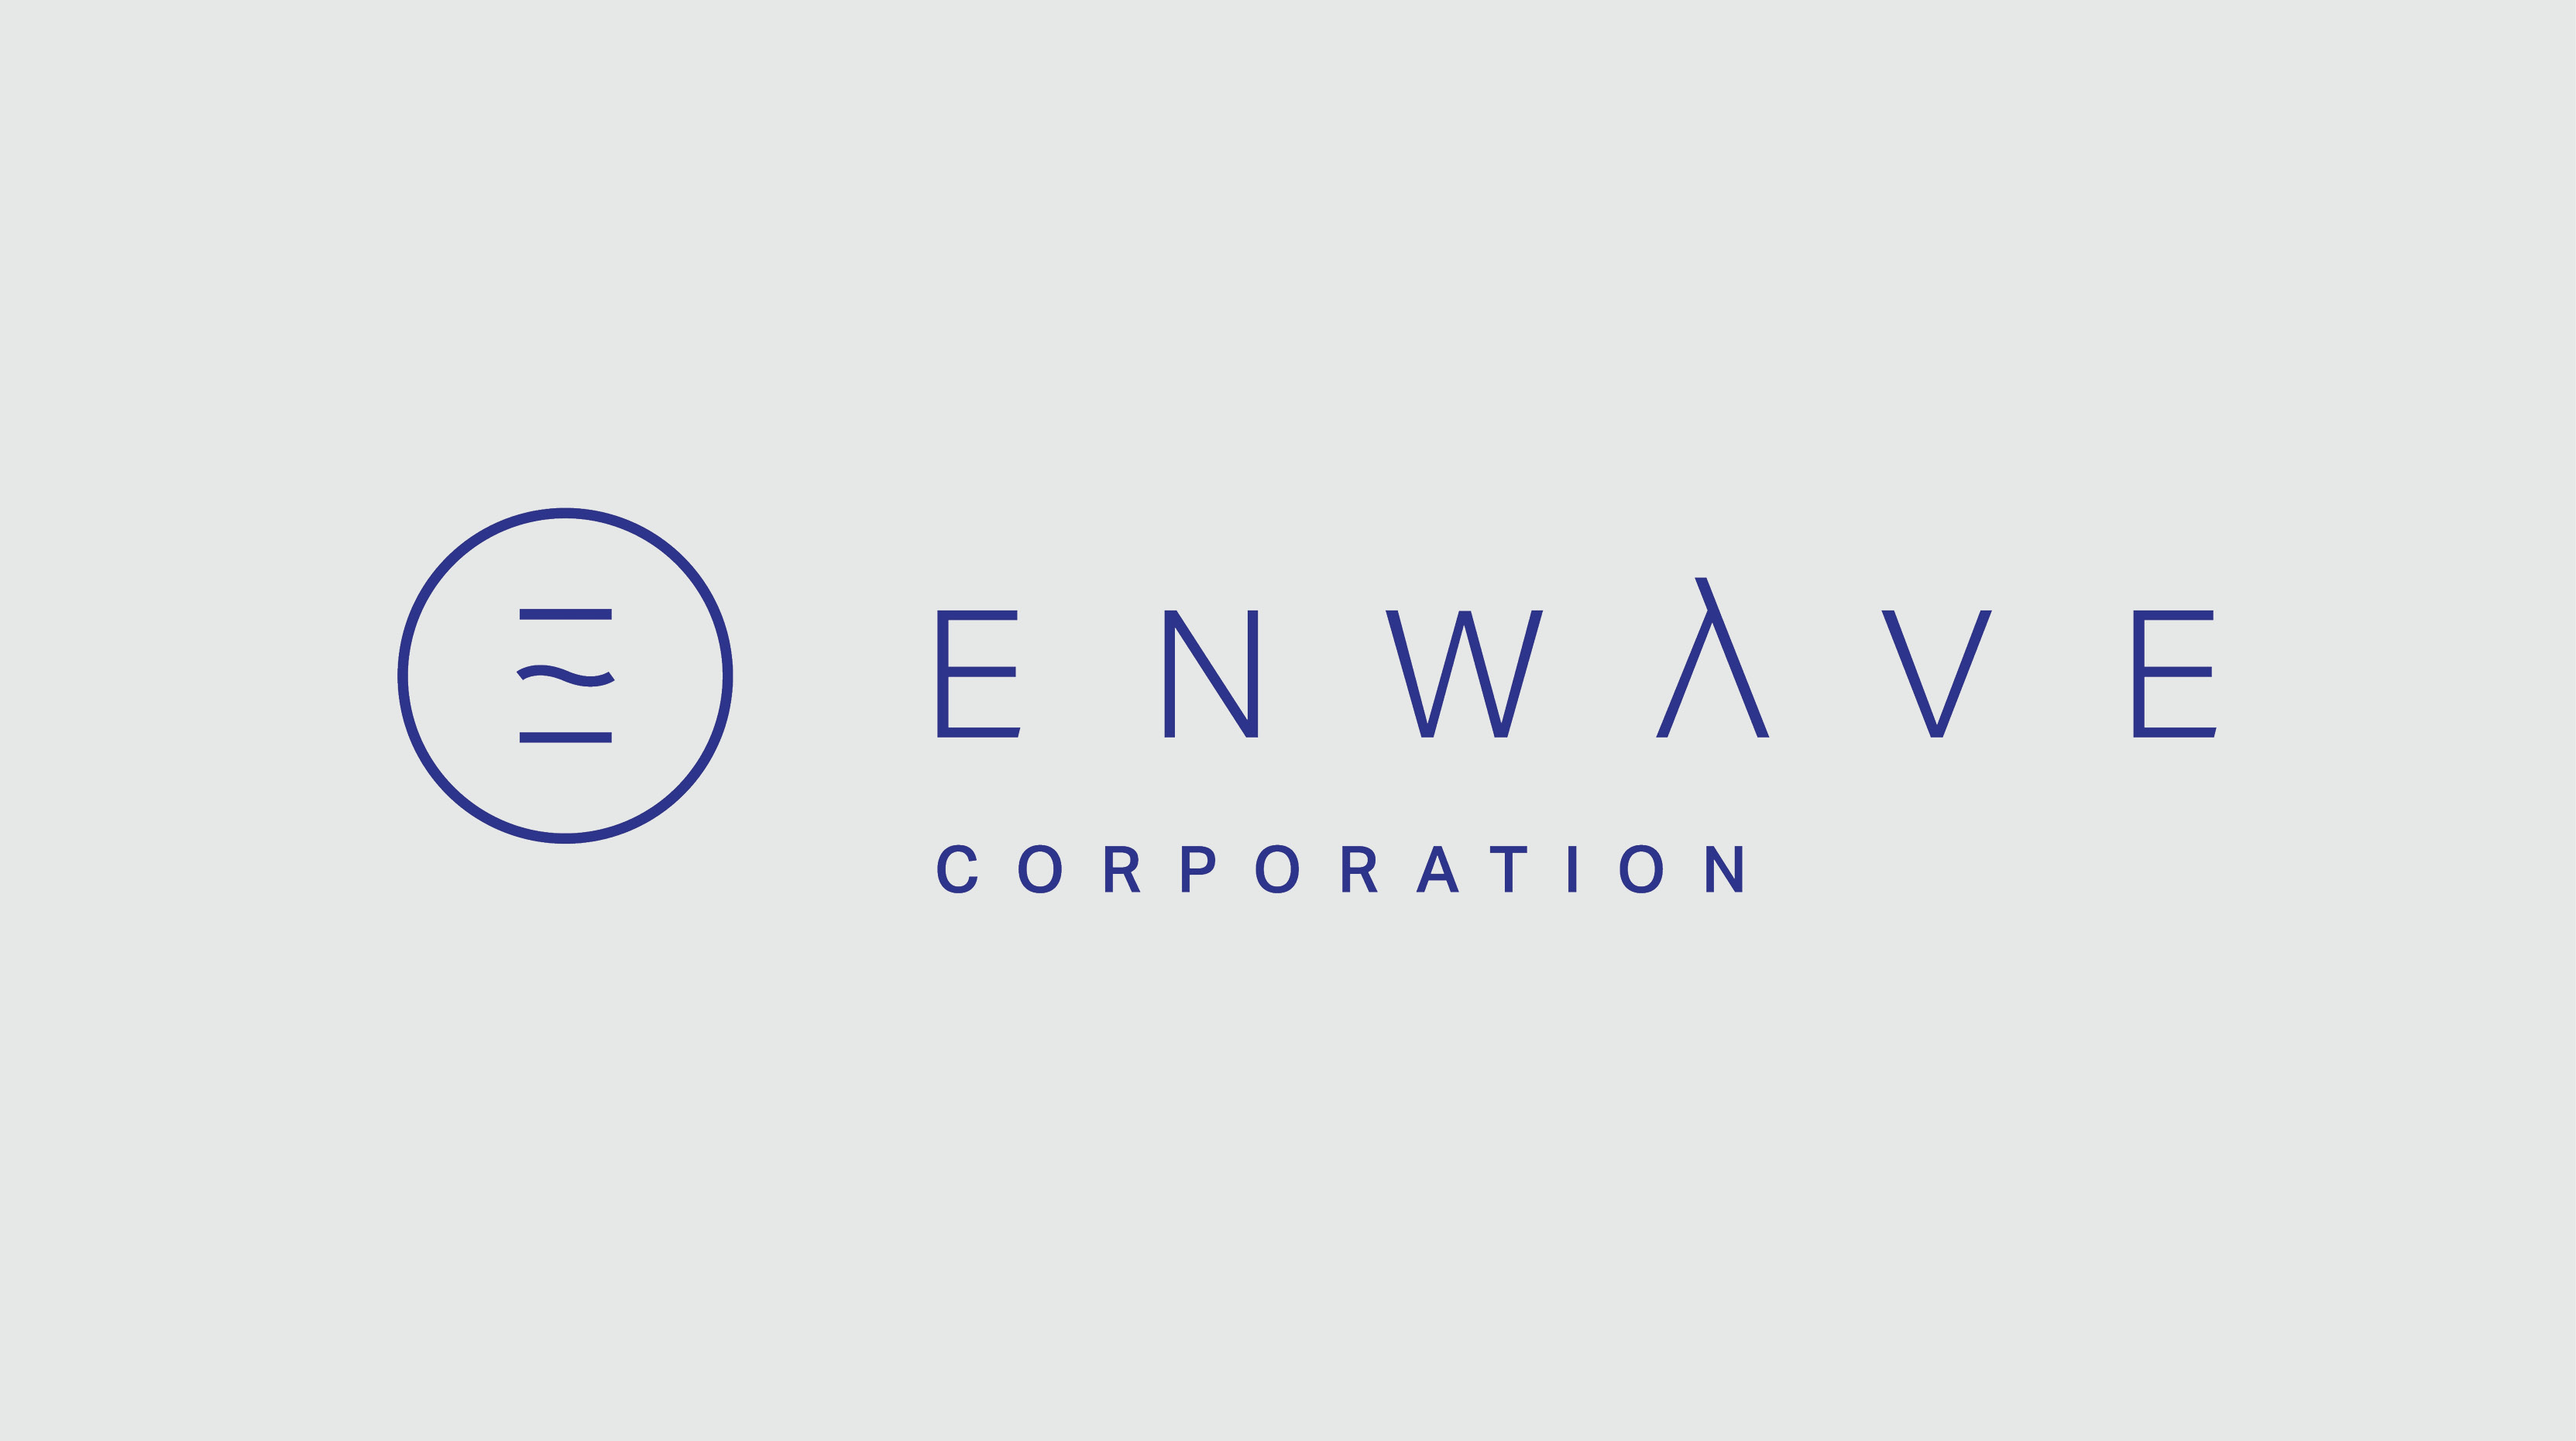 EnWave to Report Fourth Quarter 2019 Financial Results on December 10, 2019 and Host Investor Conference Call